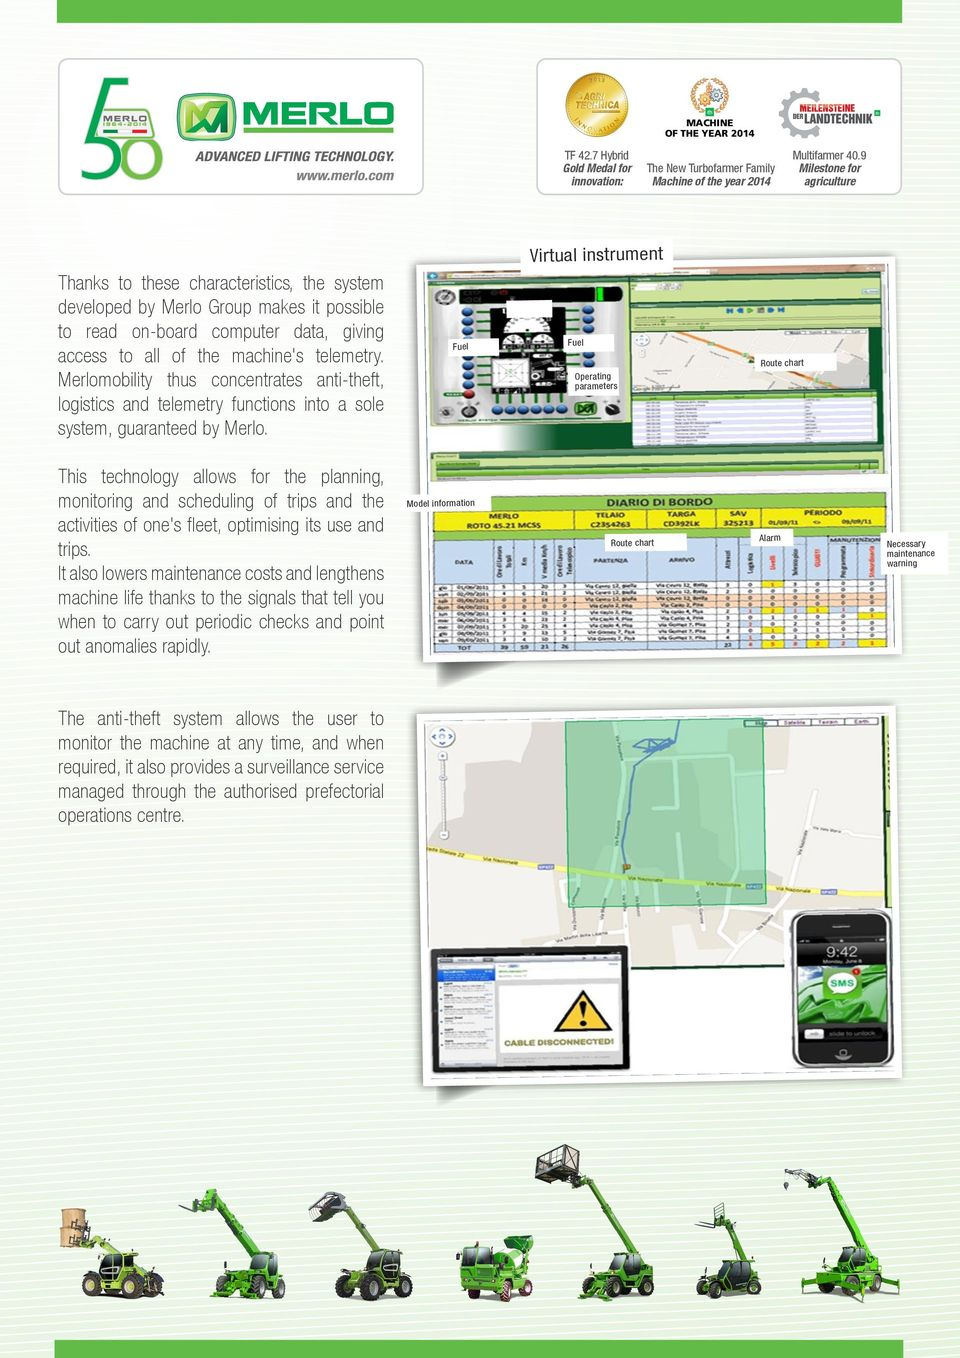 Fuel Fuel Virtual instrument Operating parameters Route chart This technology allows for the planning, monitoring and scheduling of trips and the activities of one's fleet, optimising its use and